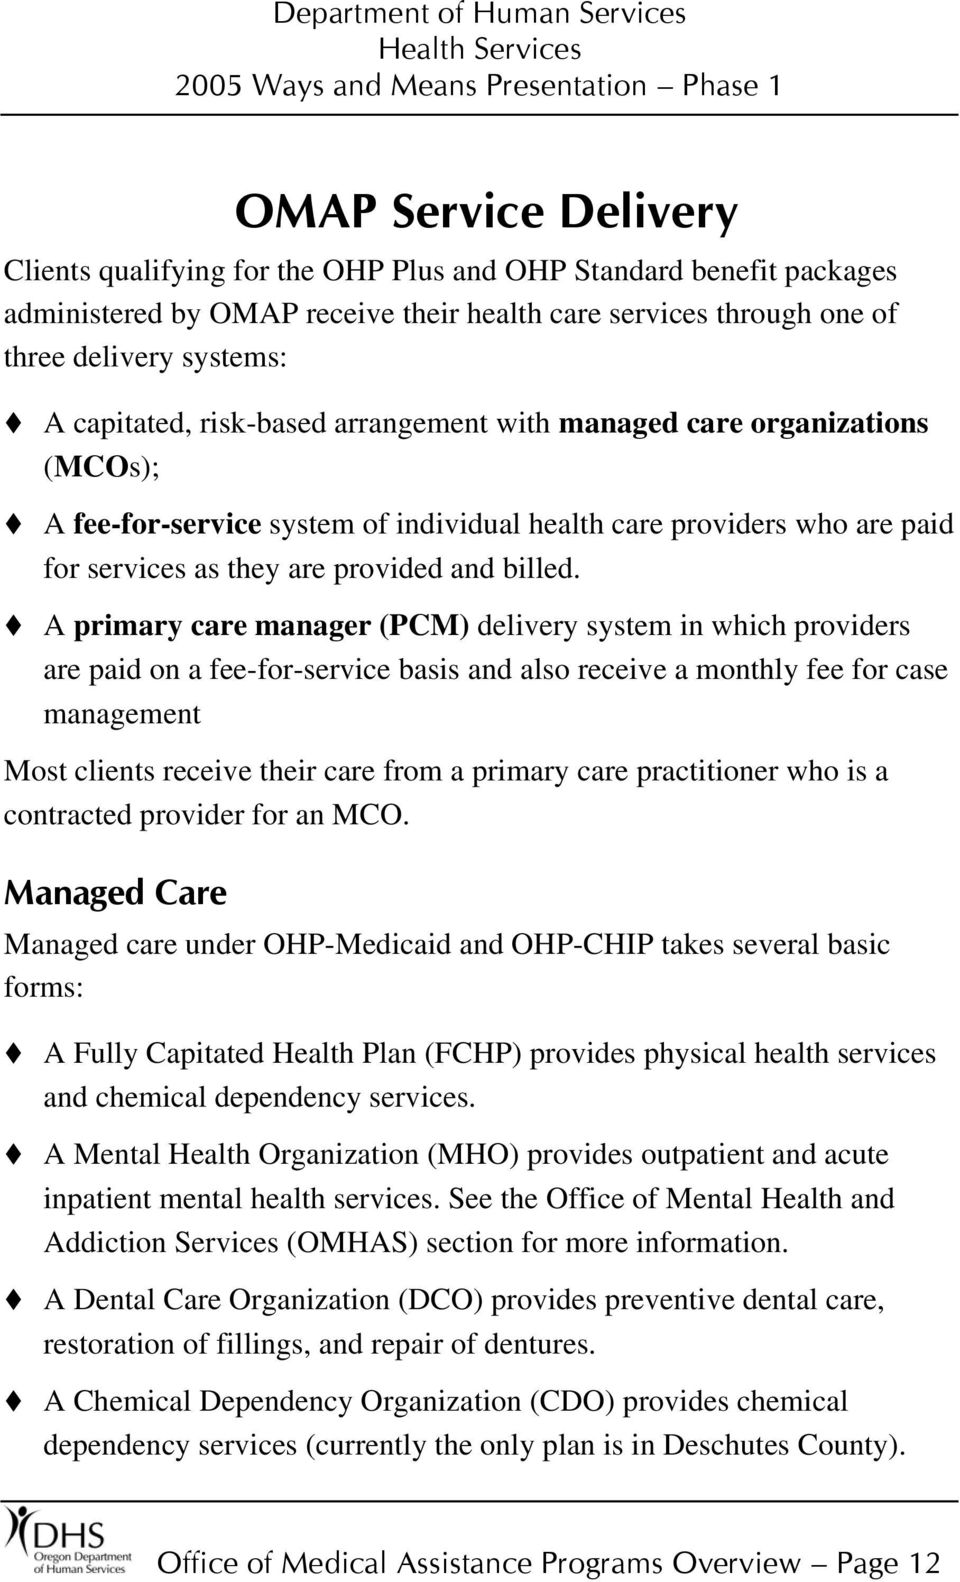 A primary care manager (PCM) delivery system in which providers are paid on a fee-for-service basis and also receive a monthly fee for case management Most clients receive their care from a primary